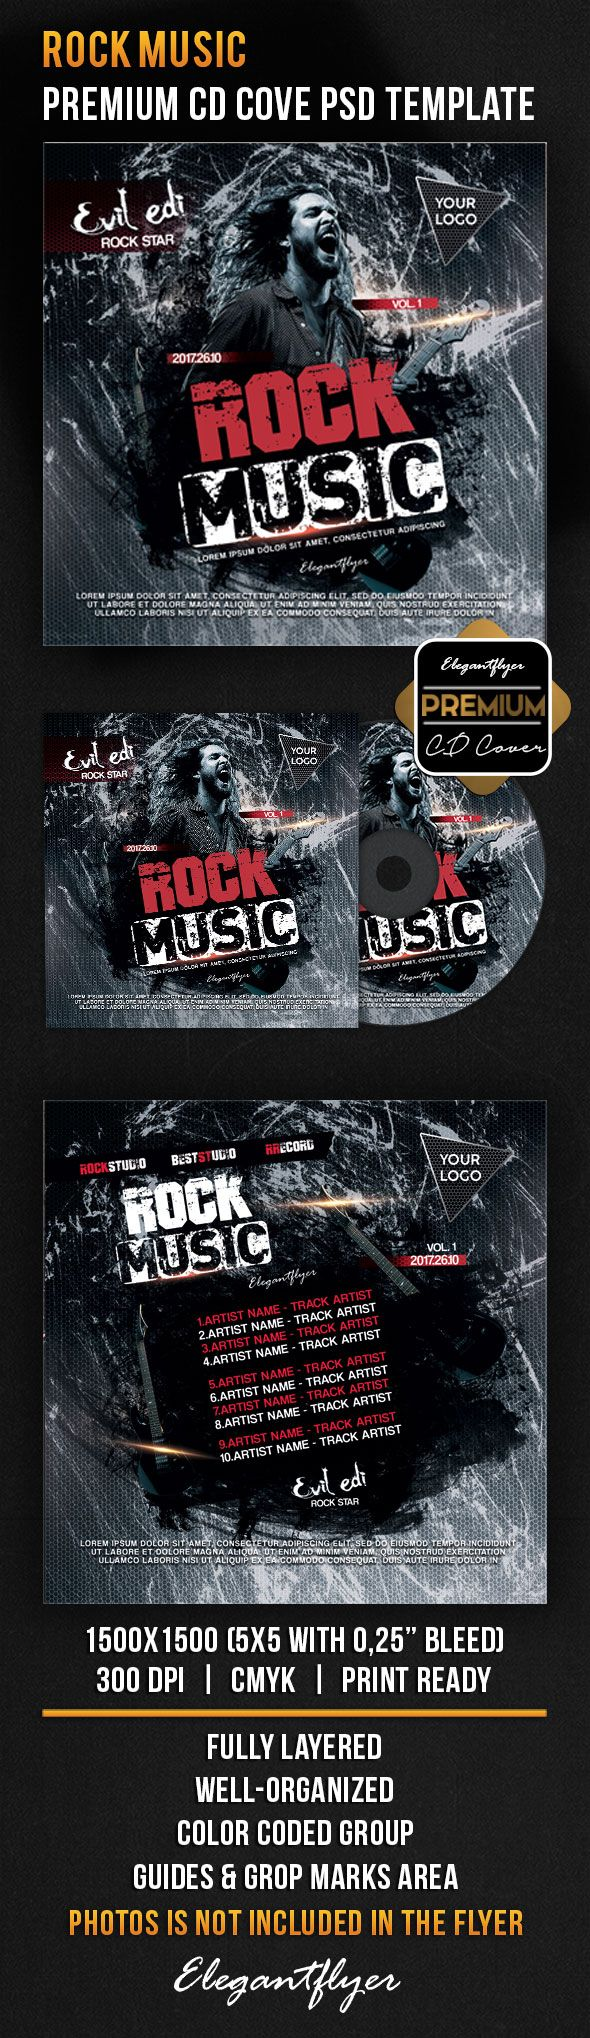 Hard Rock Music Cd Cover